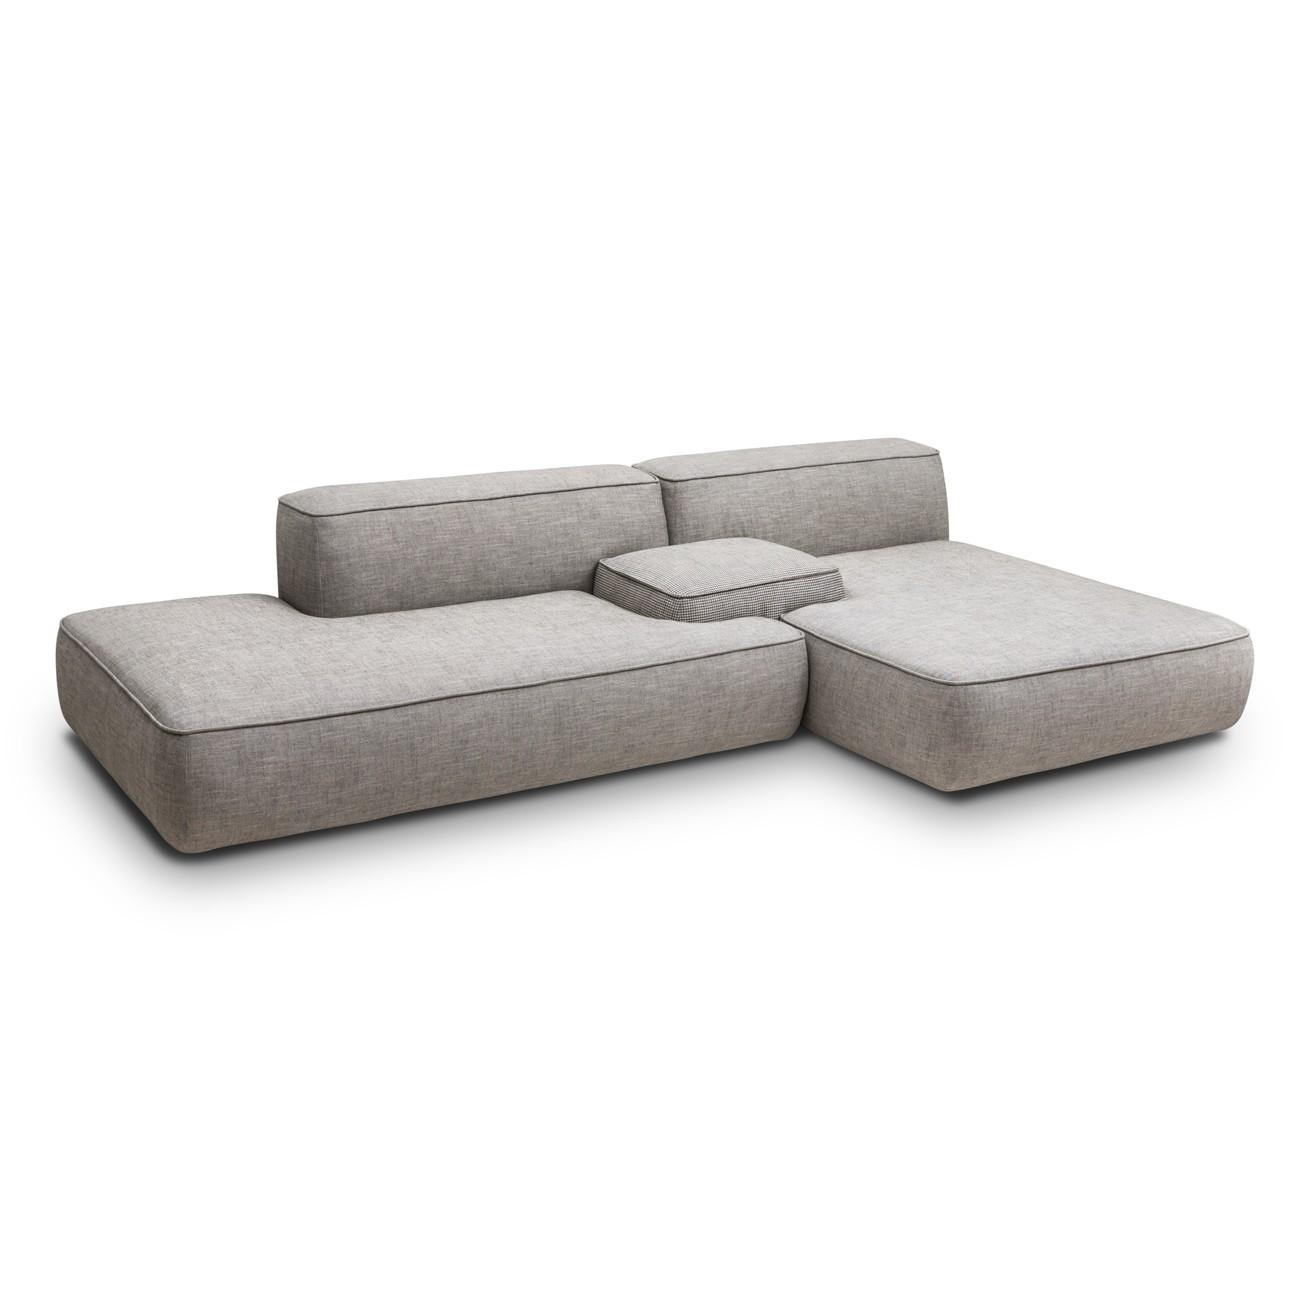 Cloud Magnetic Floating Sofa Criteria Sectional Sofas Chicago Four Throughout Magnetic Floating Sofas (Image 6 of 20)